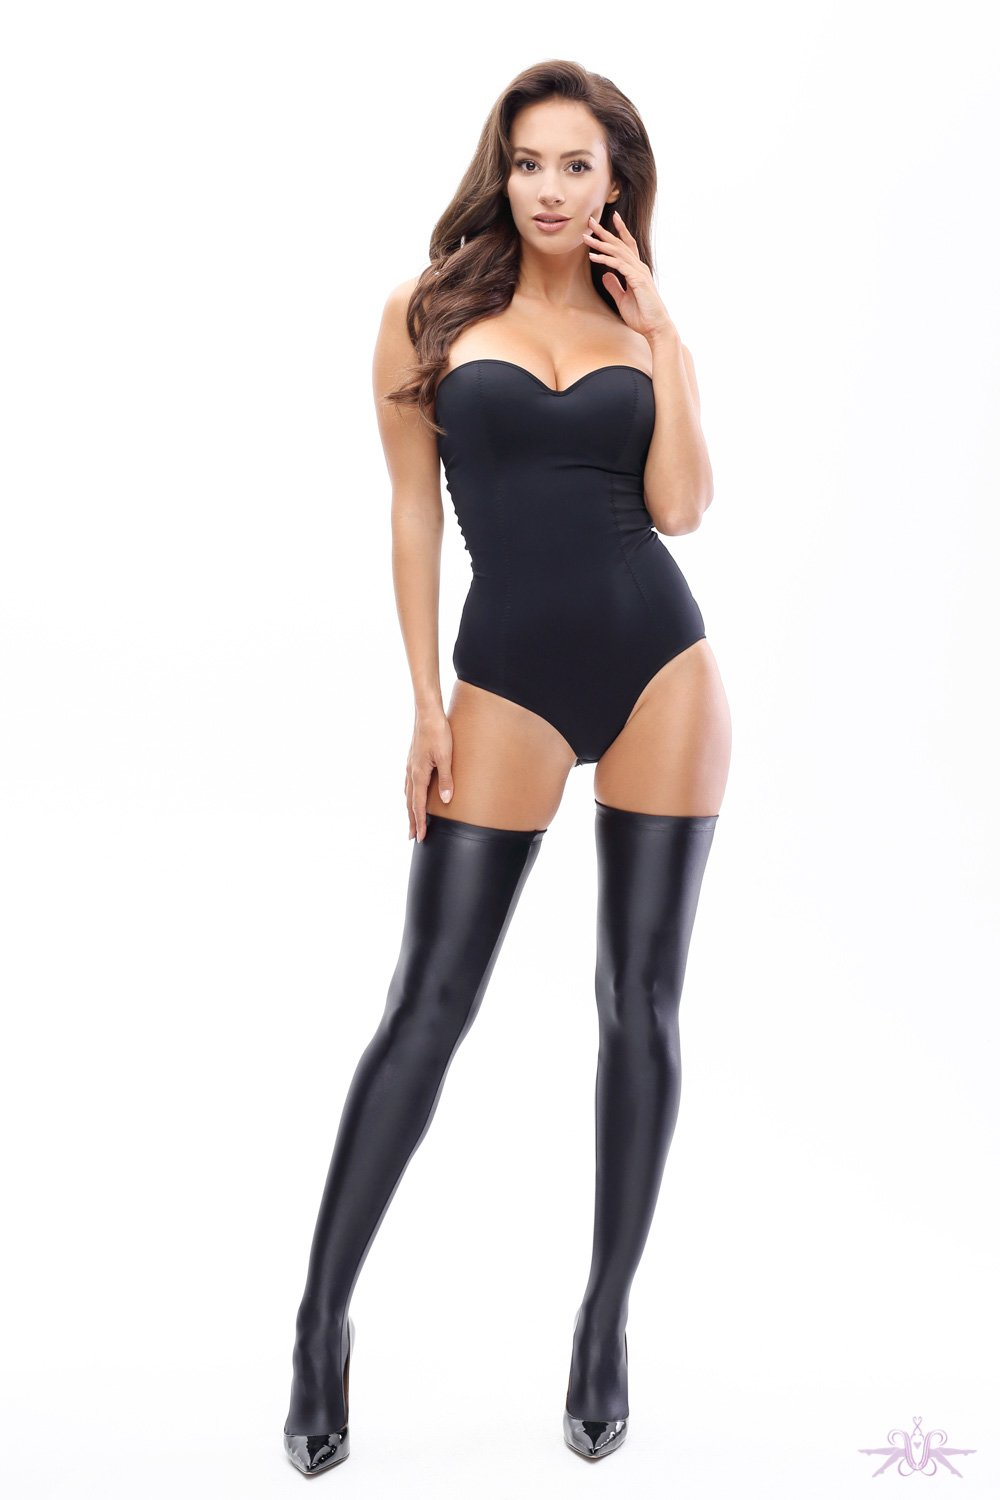 MissO Glossy Opaque Hold Ups